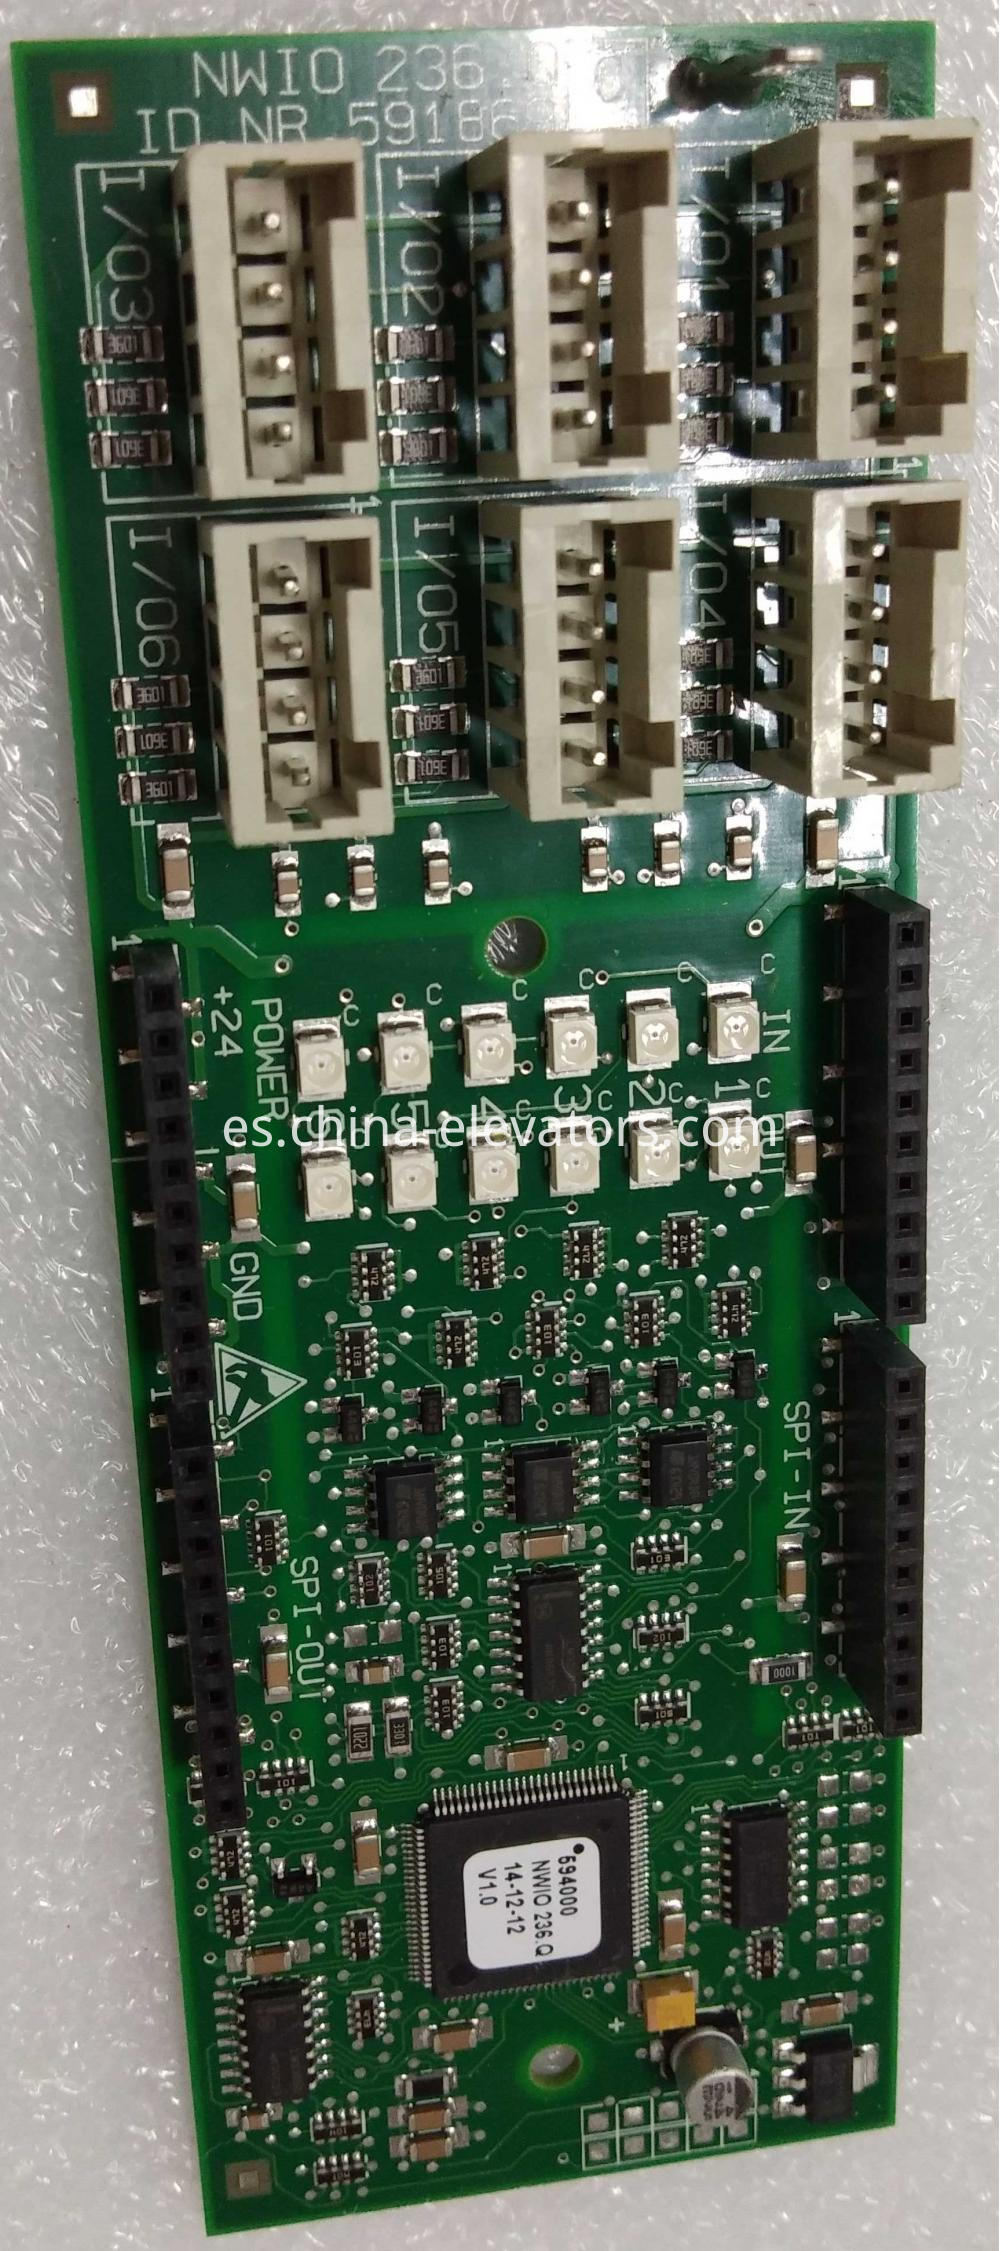 Schindler Elevator Cabin Function Interface Board 591869